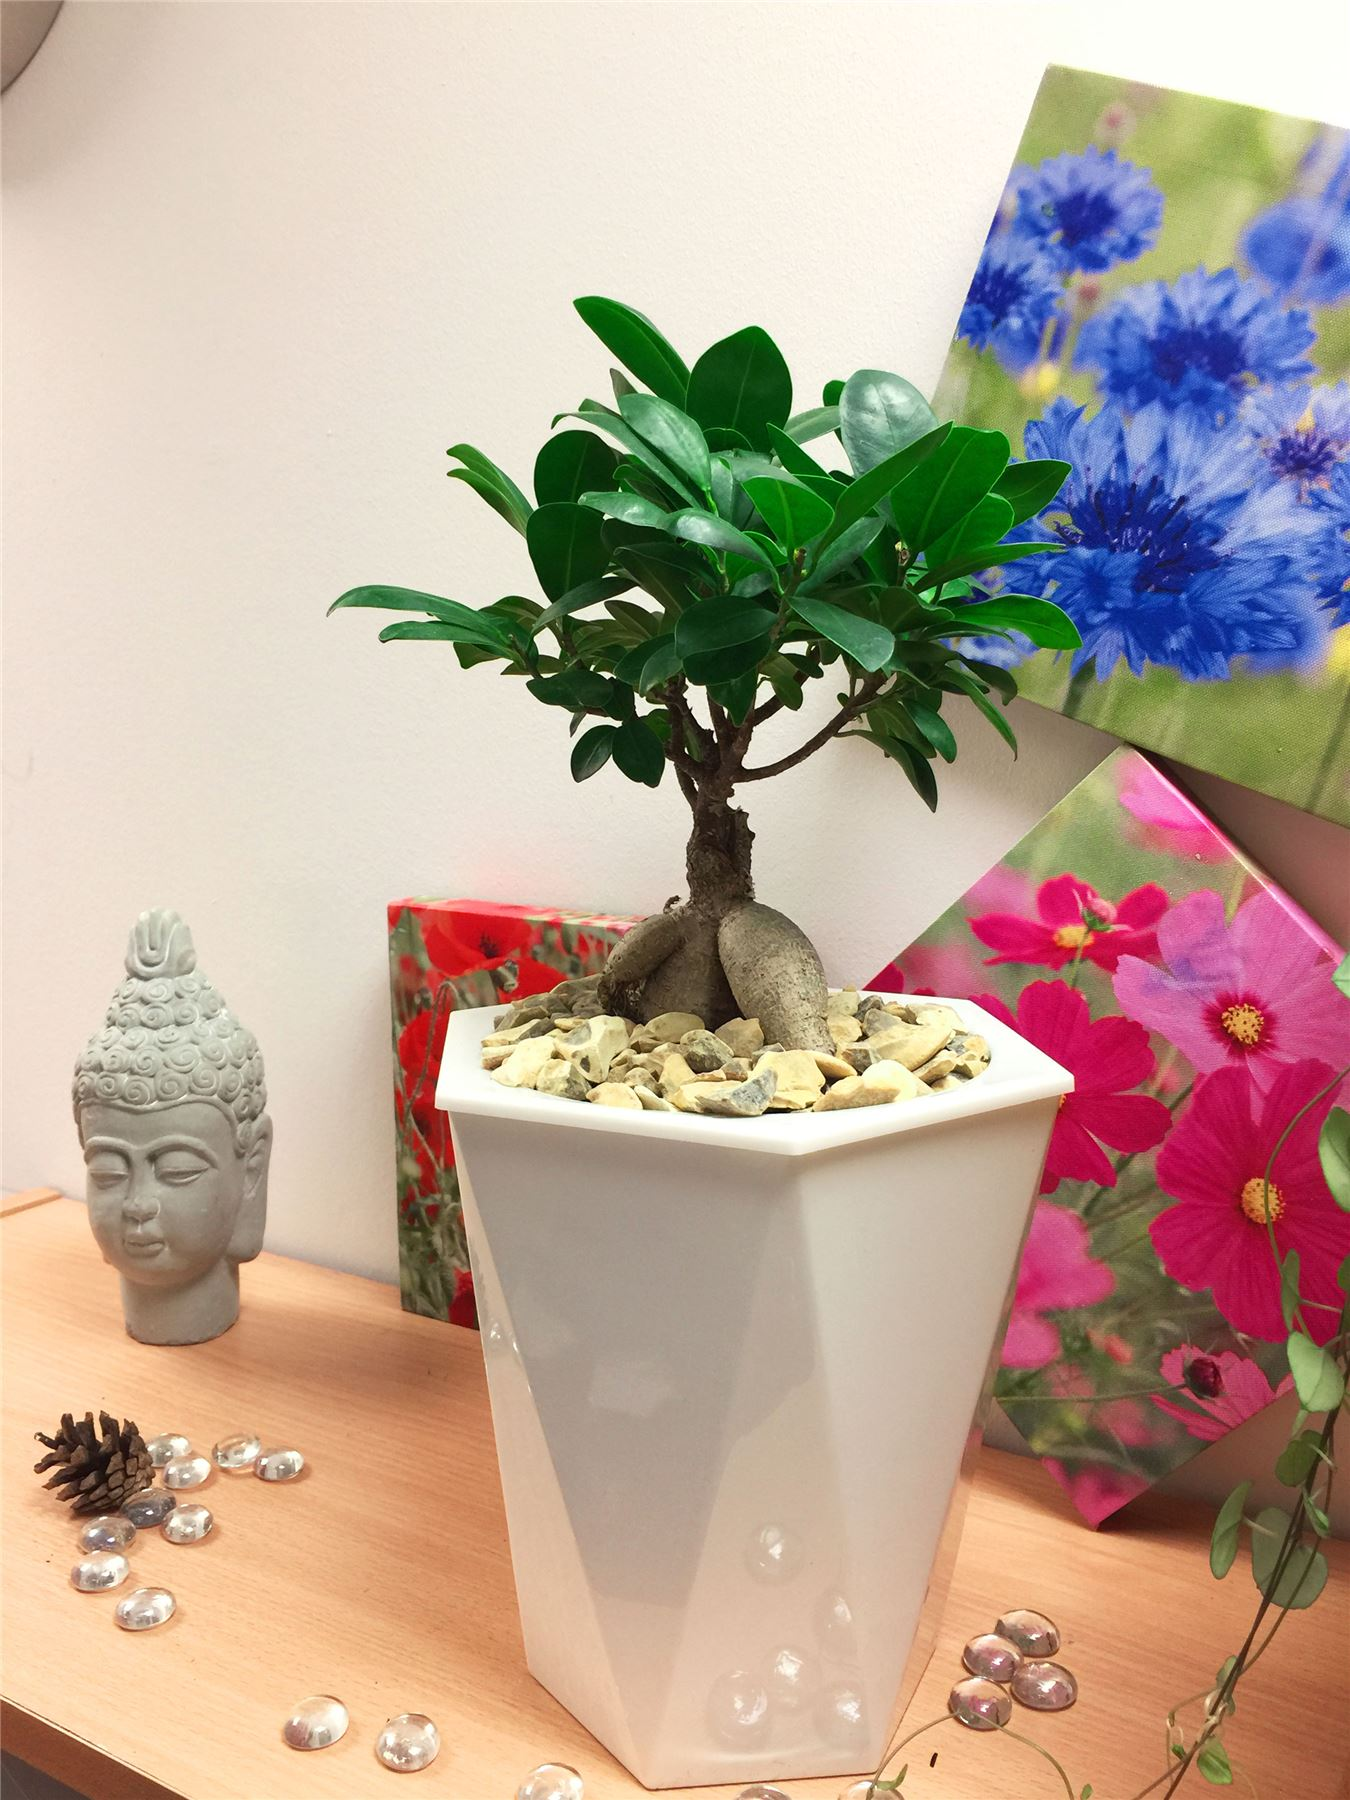 7fb22ae6456c Details about Ficus Ginseng House Plant Bonsai Tree White Rhombus Self  Watering Pot Gravel Top